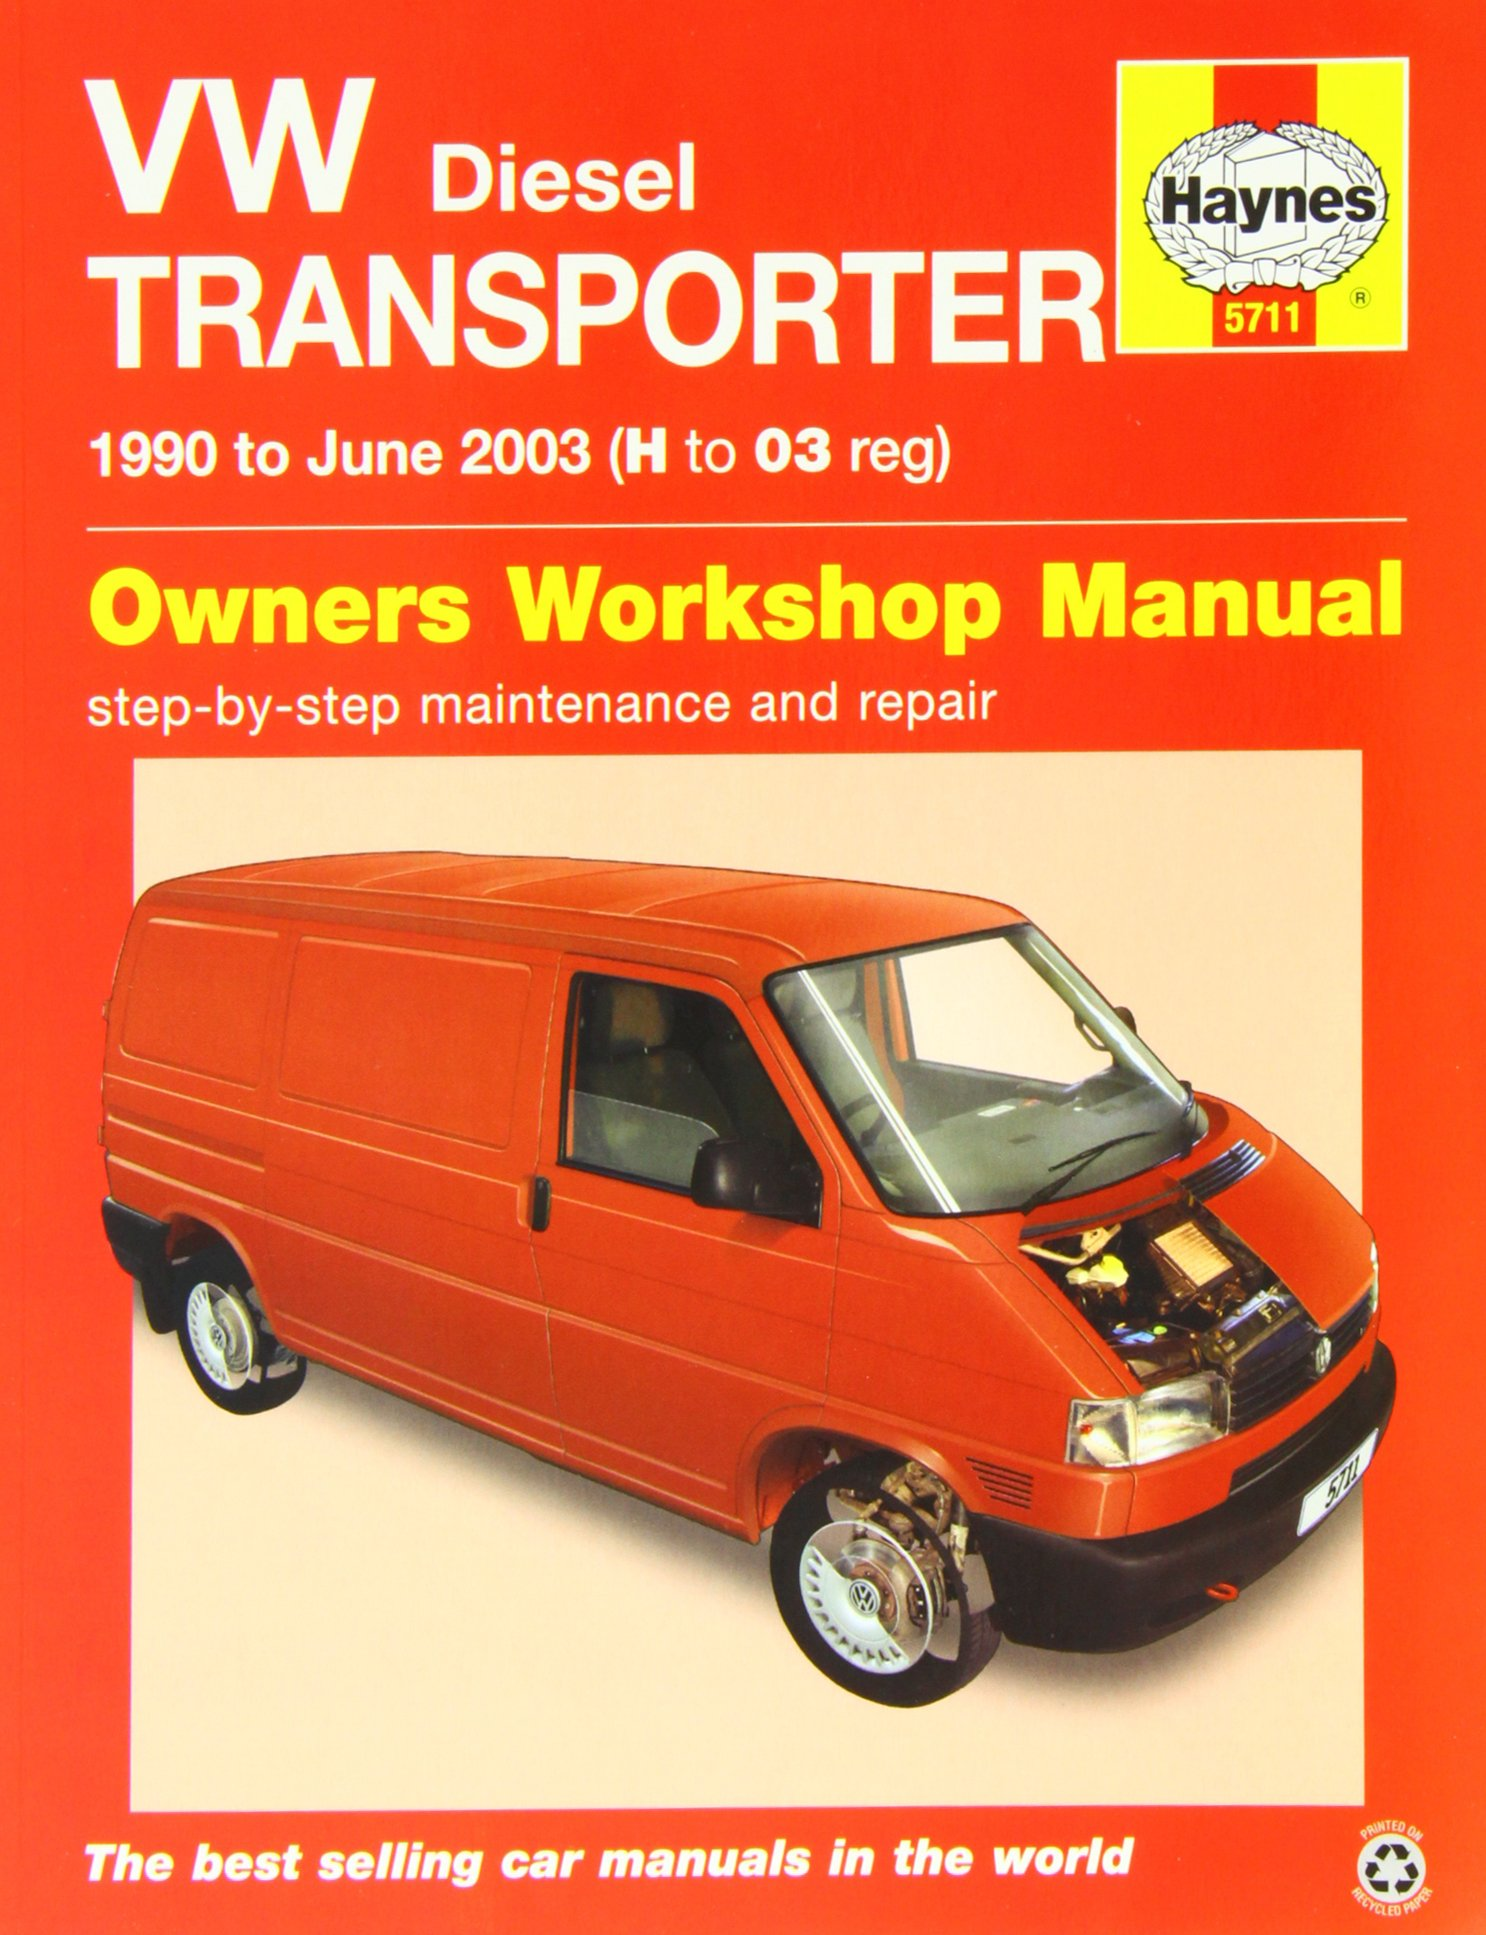 vw t4 transporter diesel 90 june 03 haynes repair manual amazon rh amazon co uk vw transporter t4 workshop manual free download volkswagen transporter t4 workshop manual download